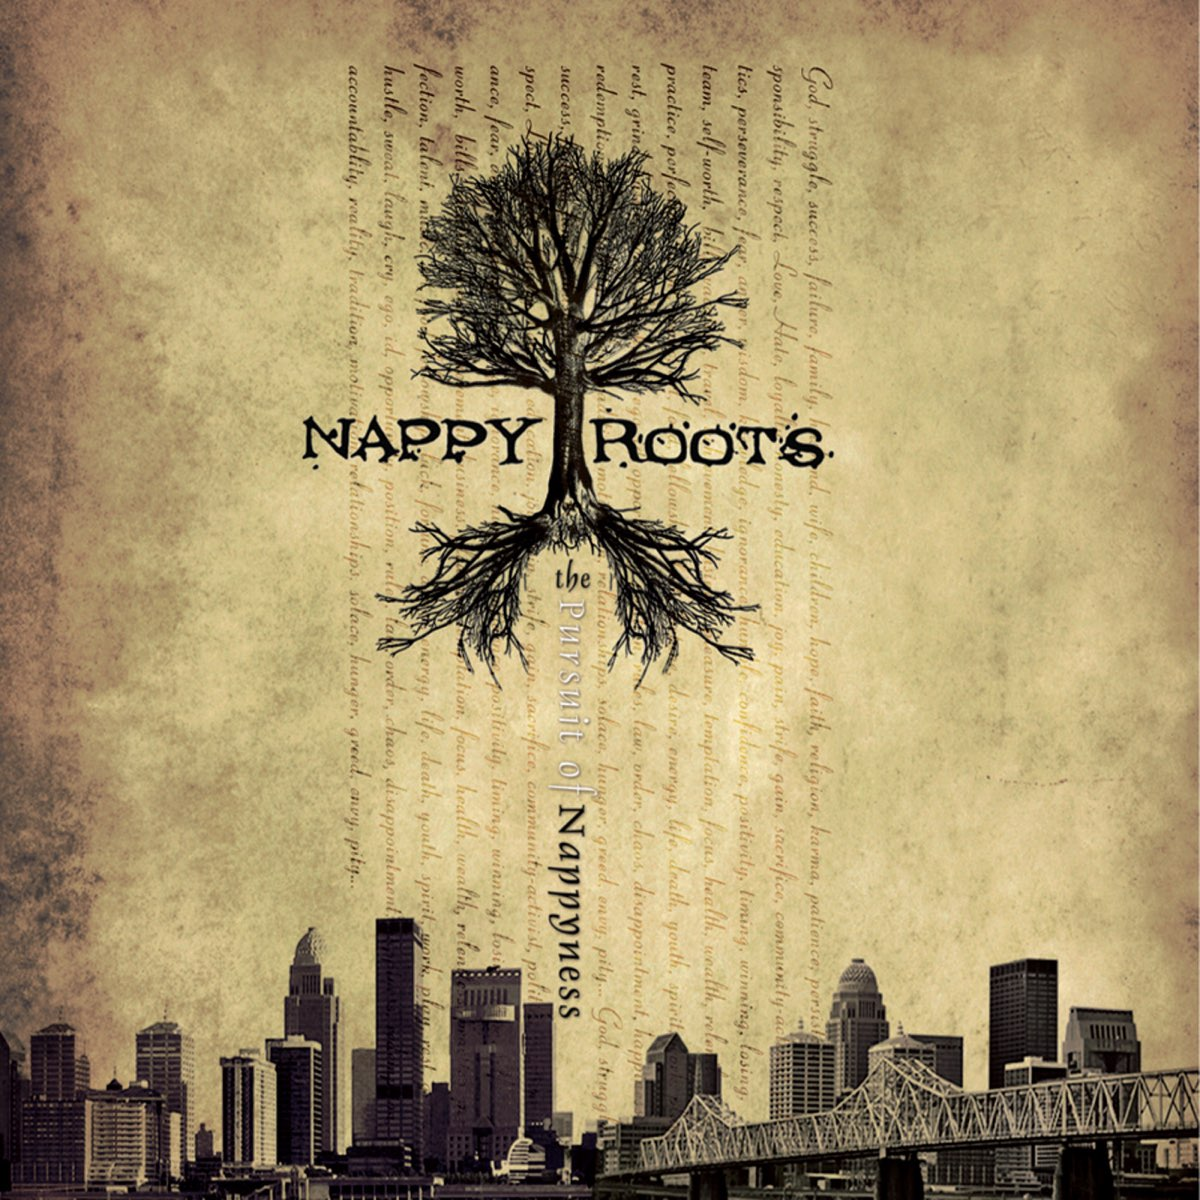 Nappy Roots, The Pursuit of Nappyness